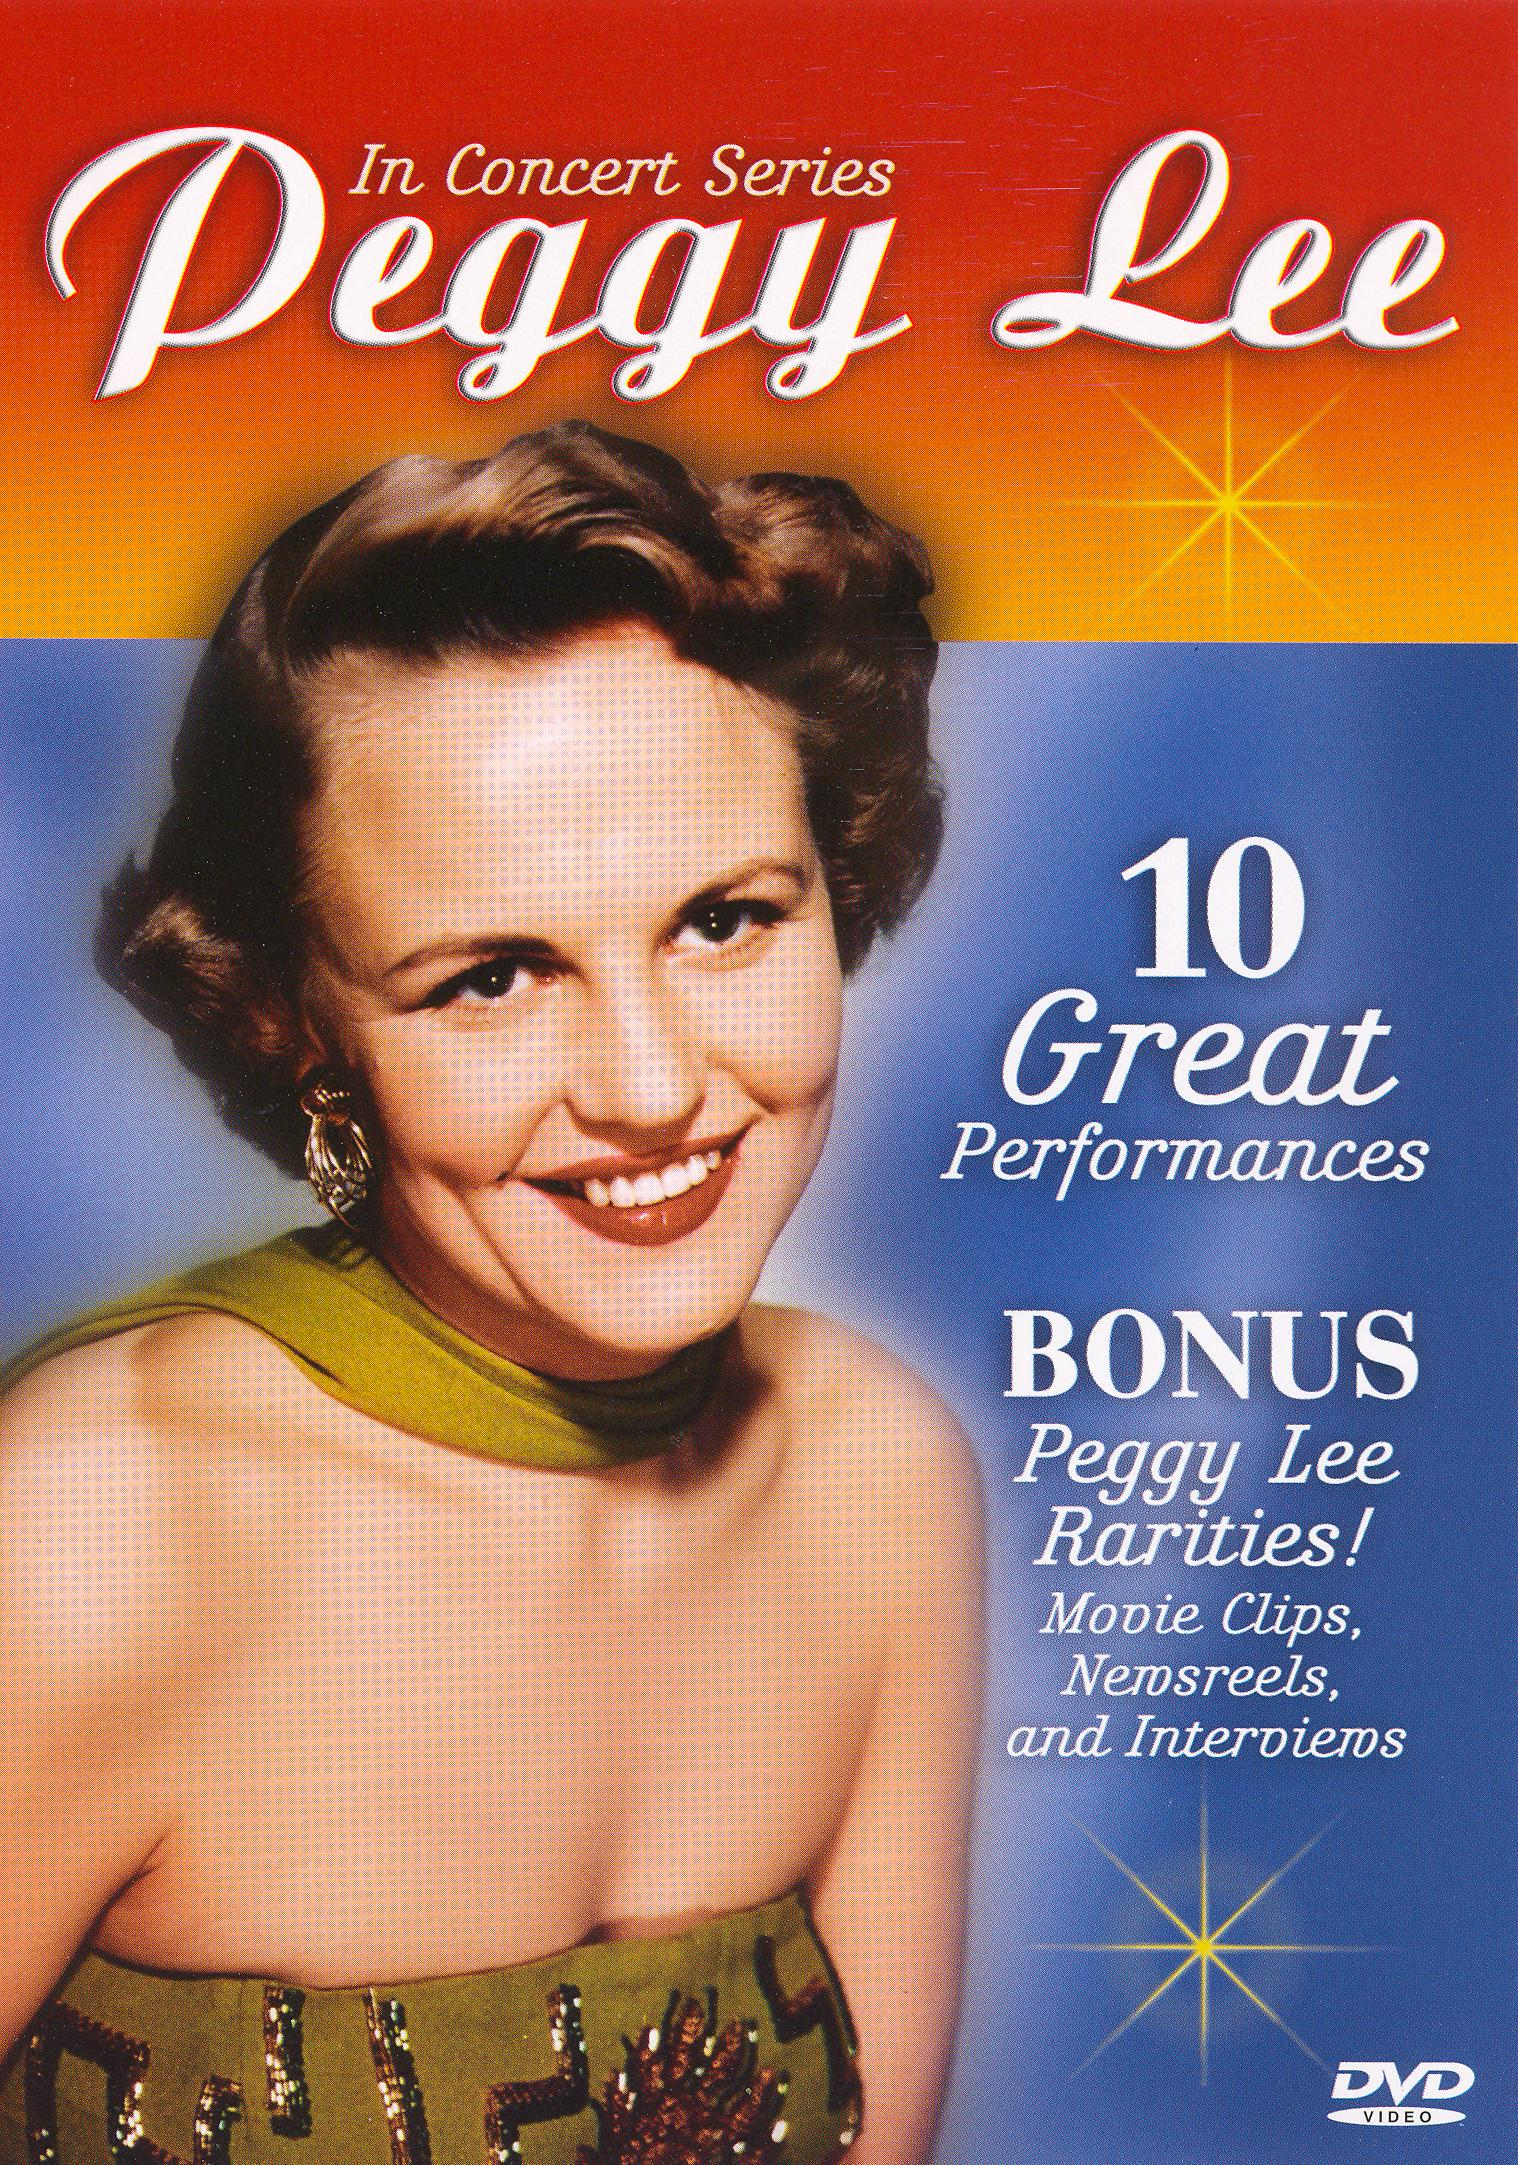 In Concert Series: Peggy Lee